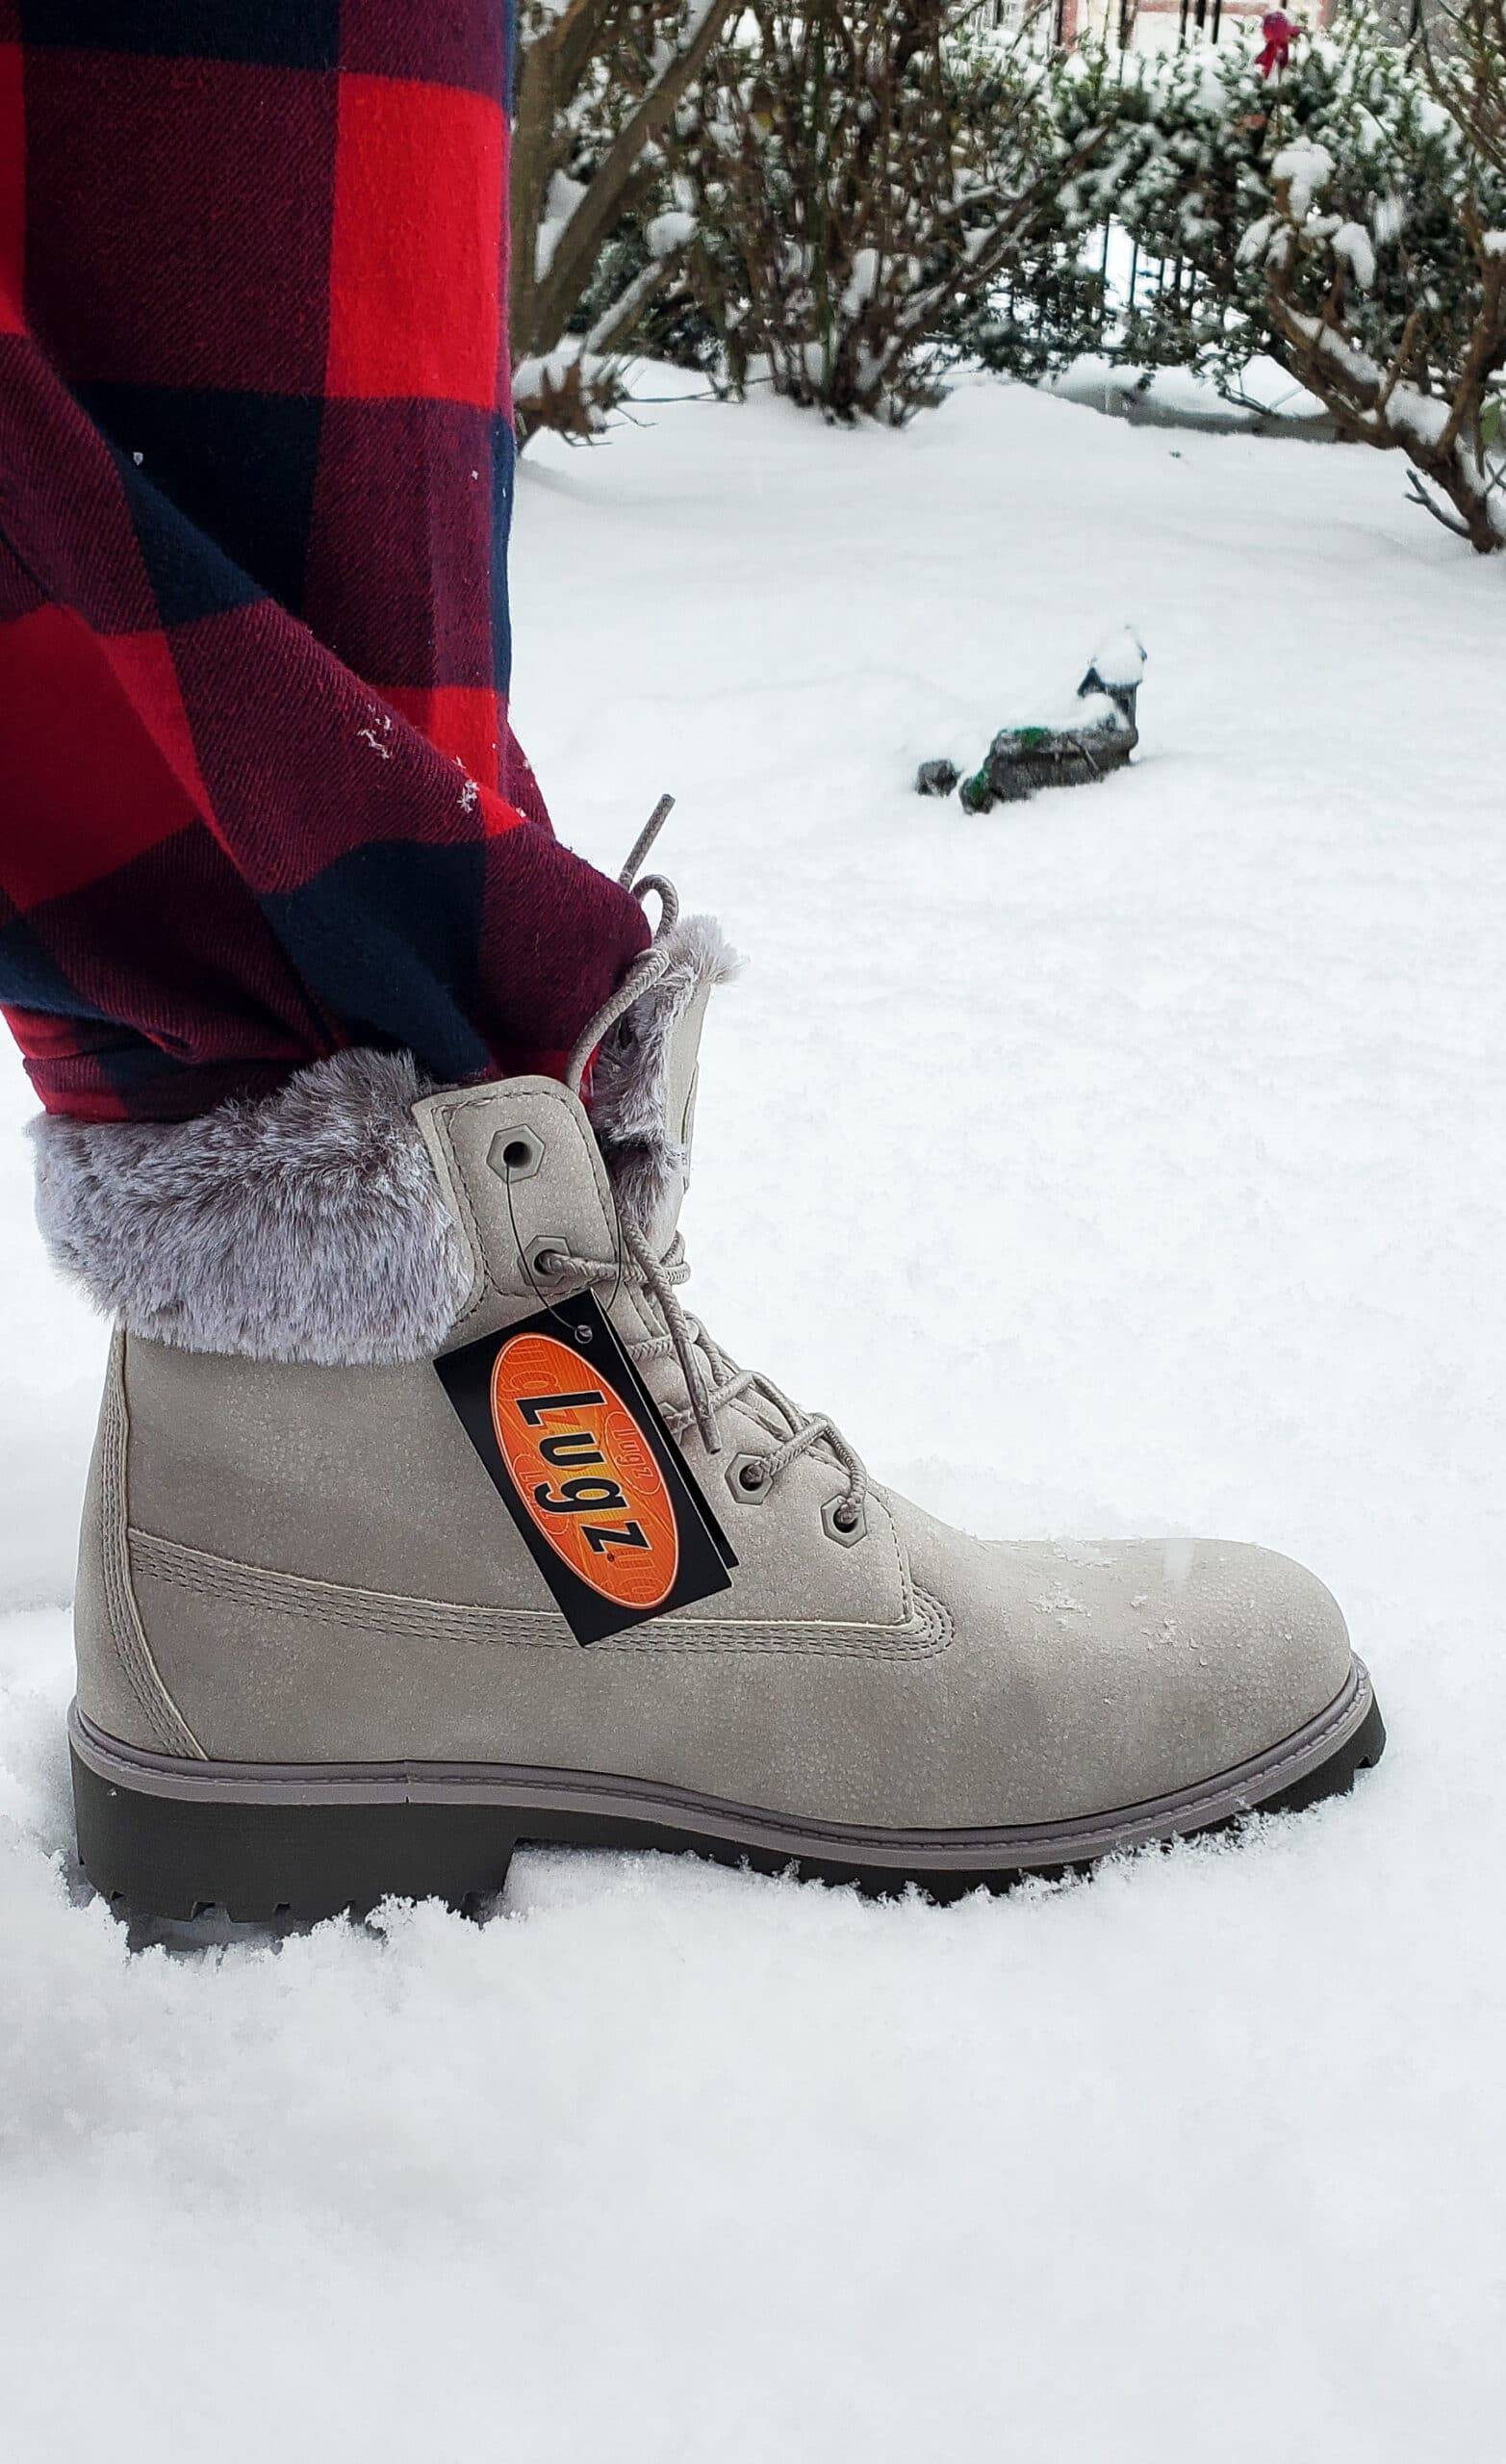 Lugz Convoy Fur Boot Closeup. Easy to style and fits seamlessly into my winter wardrobe. Read why I'm recommending this comfy and stylish gift in my Lugz Convoy Fur Boot Review.